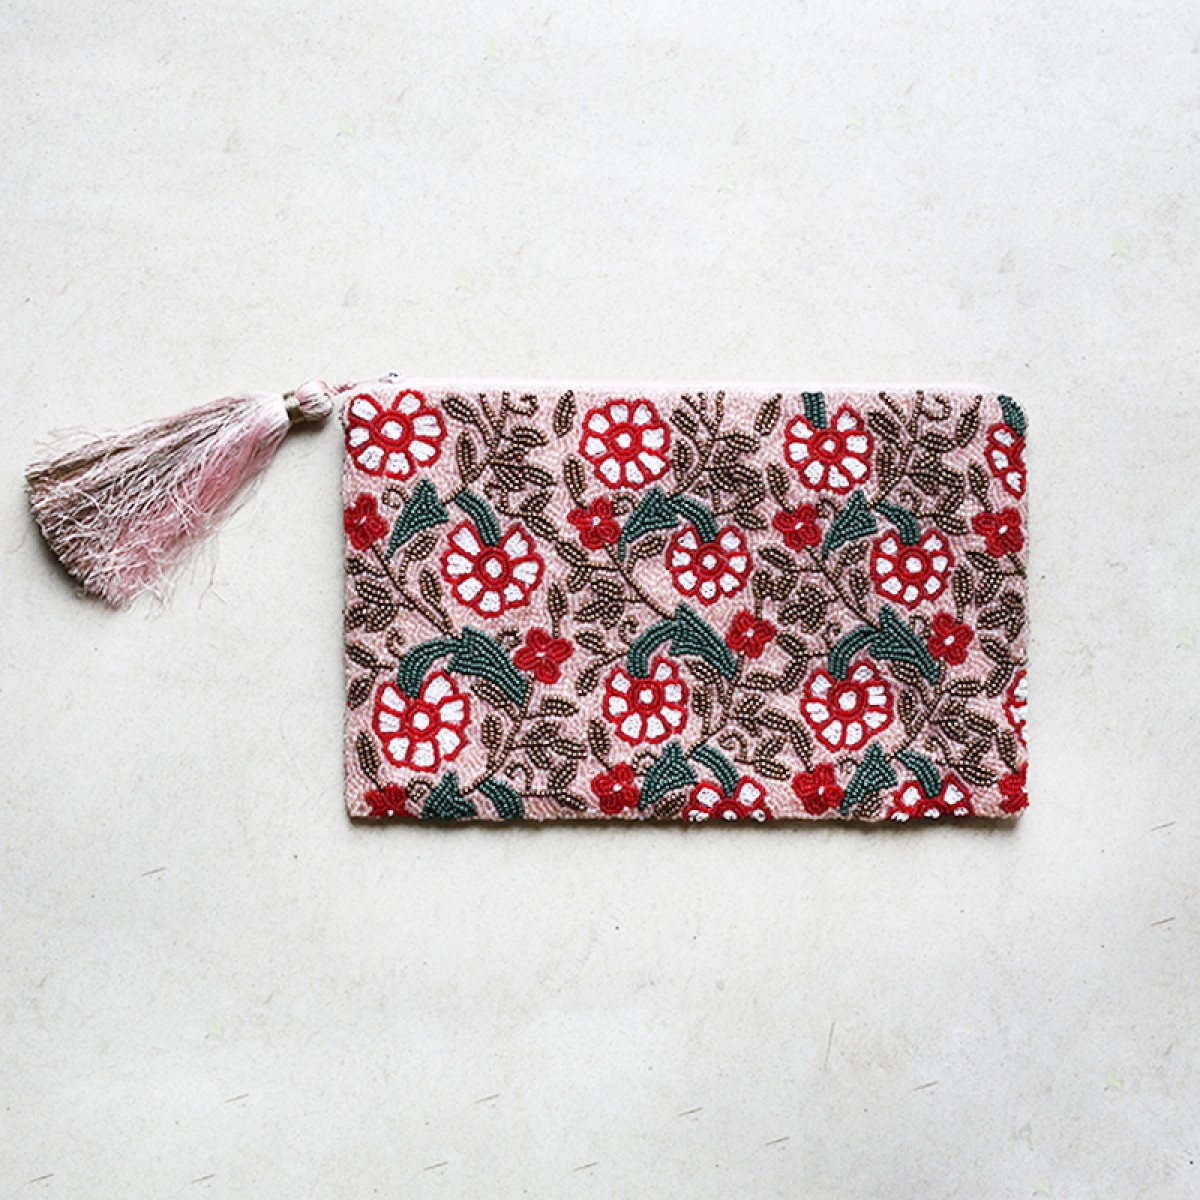 Flower sequin and beaded clutch bag